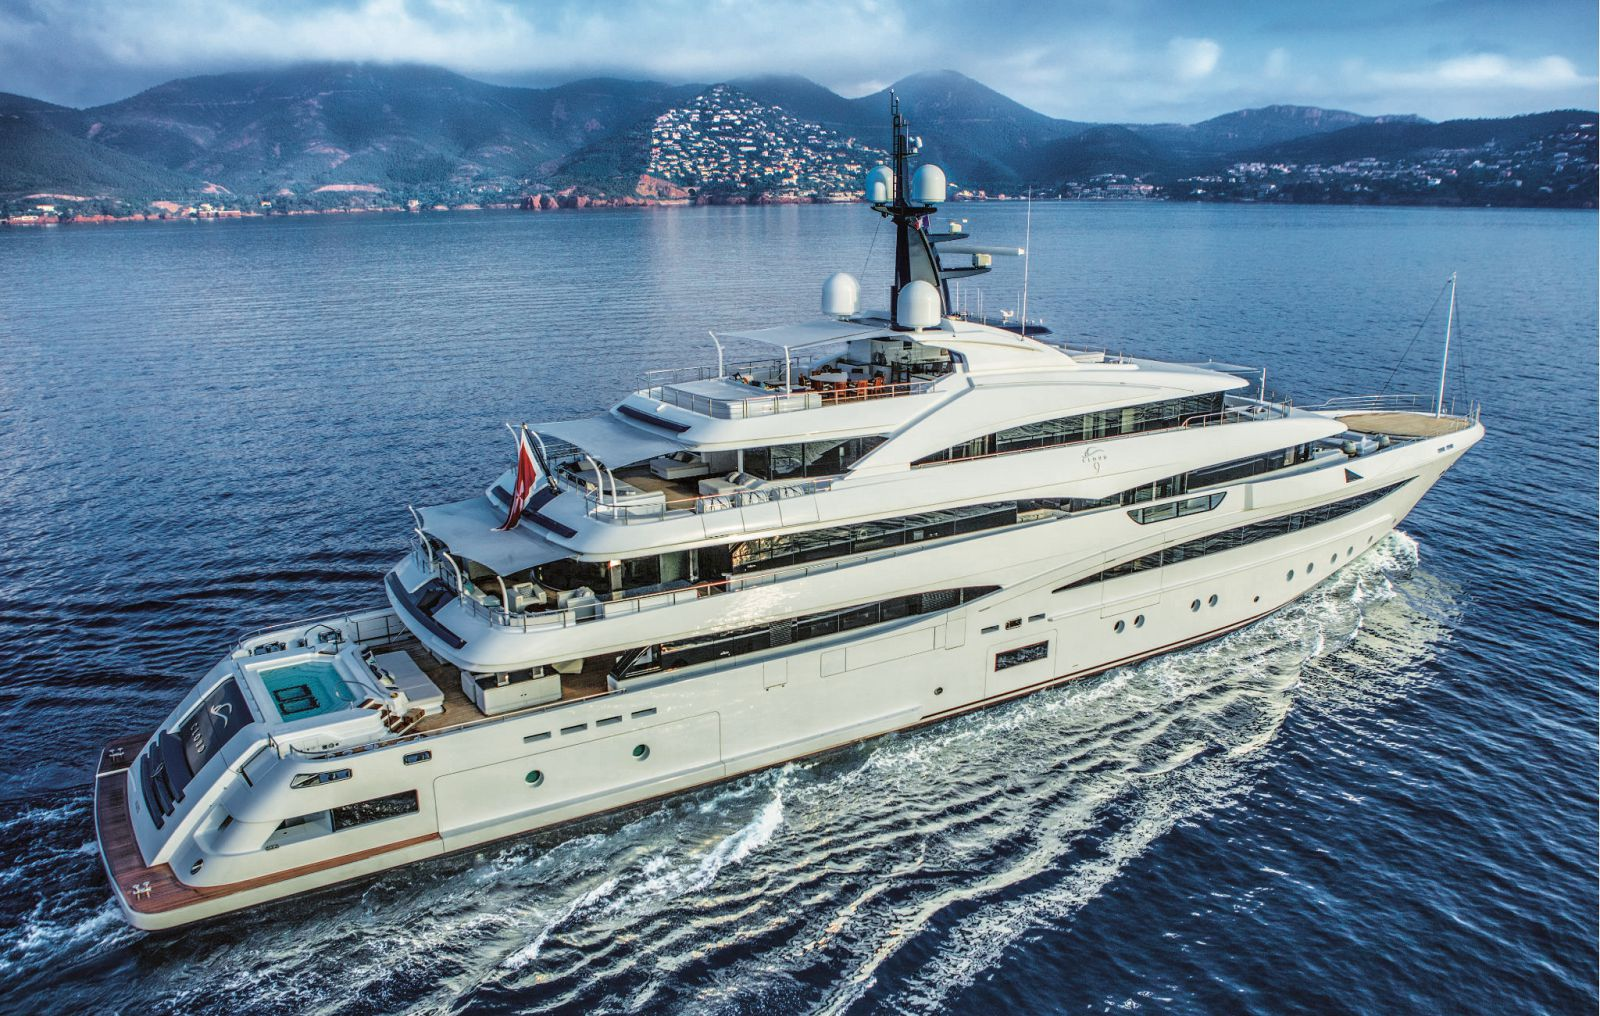 Exterior of the CRN M/Y Cloud 9 in the ocean. >